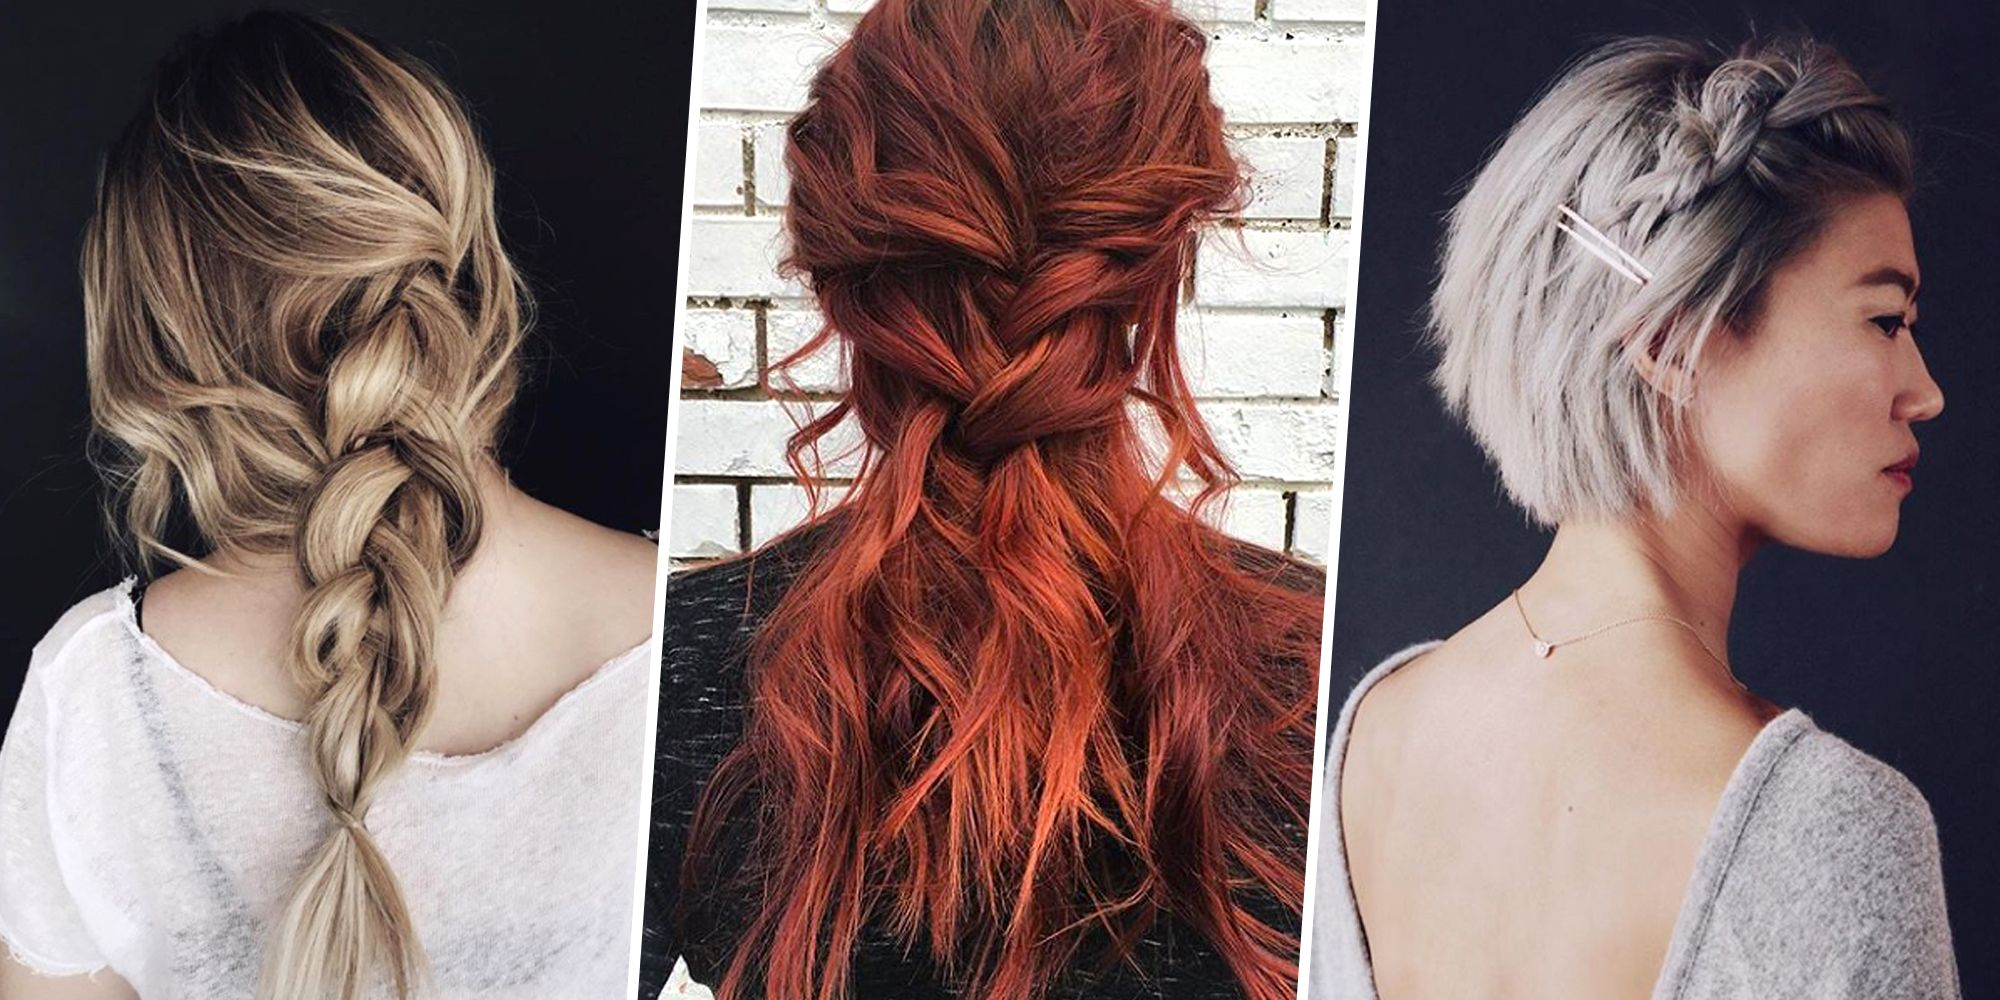 Hairstyles Out Of Style: 8 Messy, Easy Braid Ideas To Copy